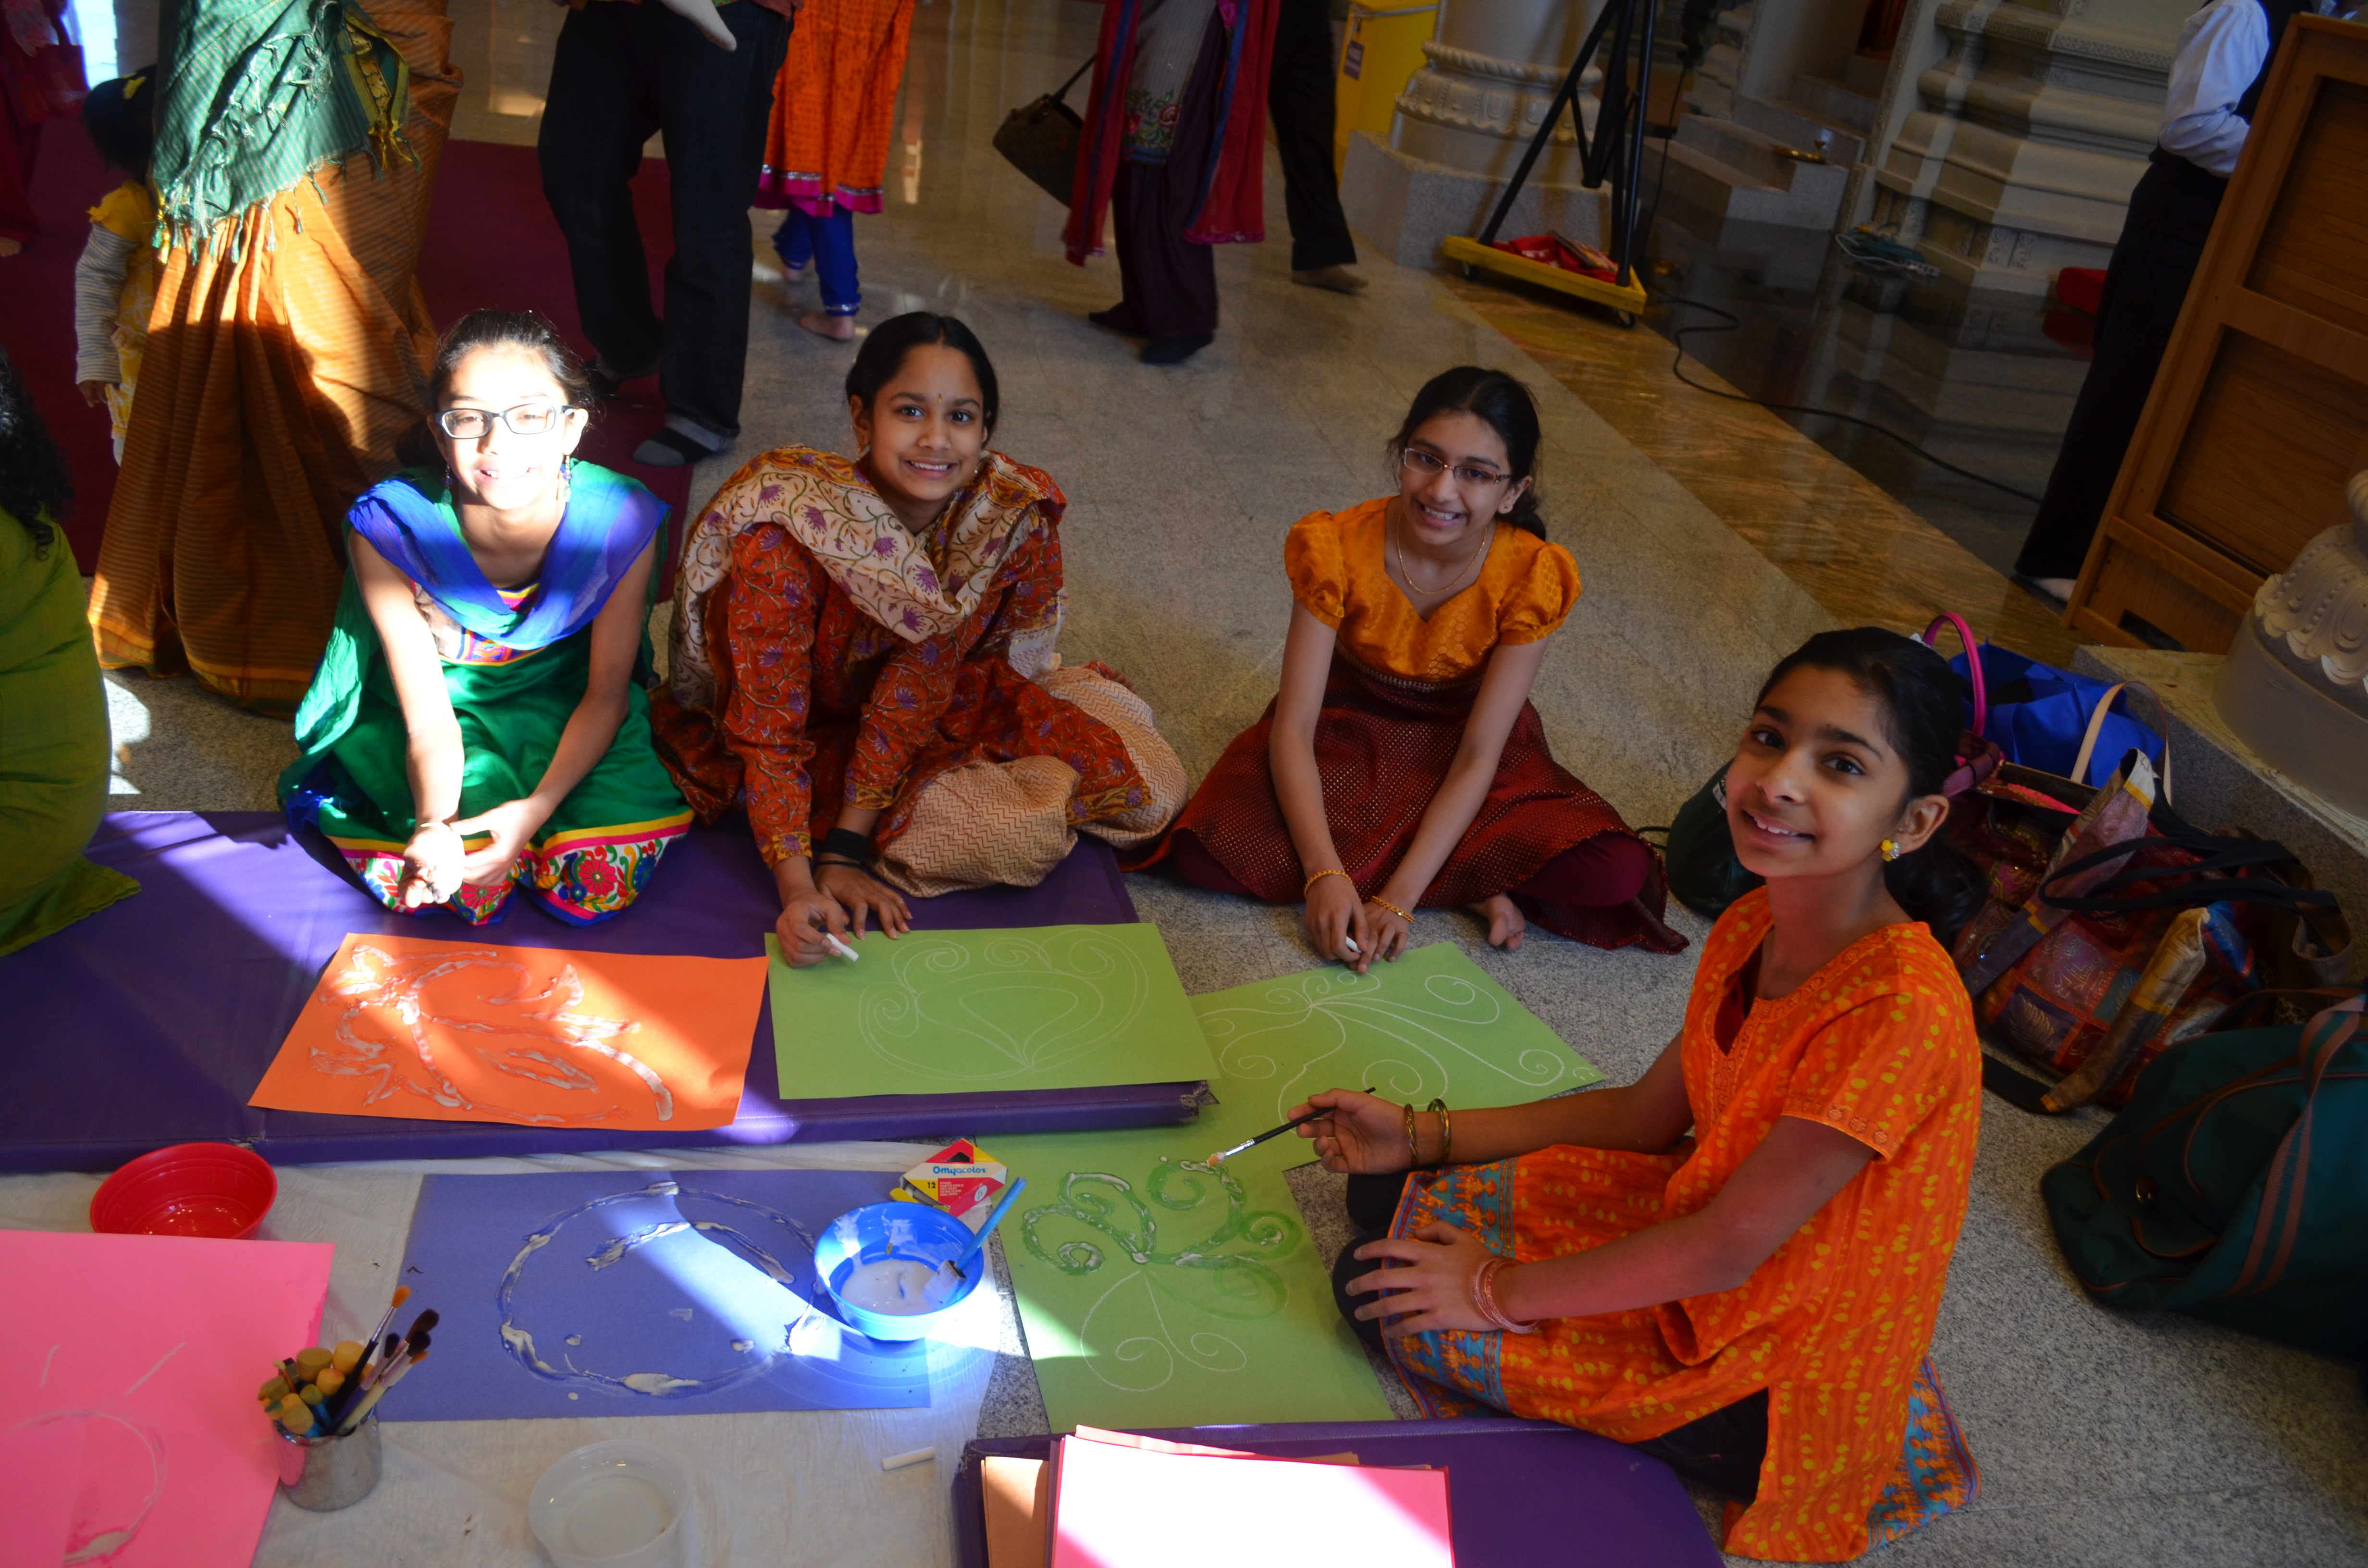 Art making at Saraswati Puja